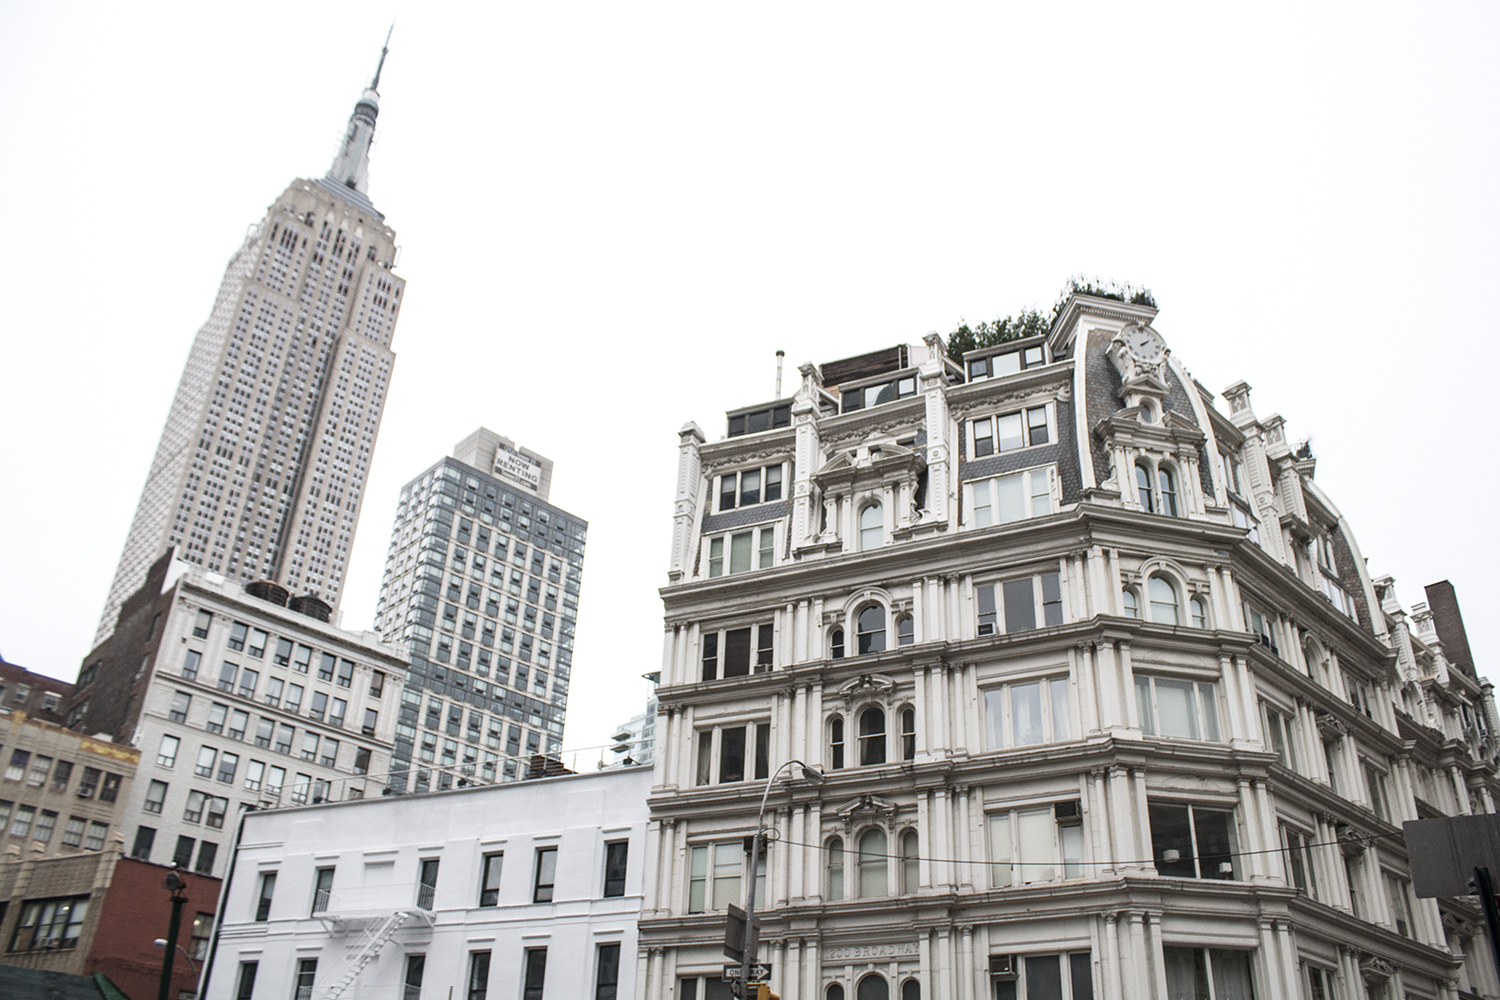 10nyc-newyork-cityscape-empirestatebuilding-travel-diary-architecture-style